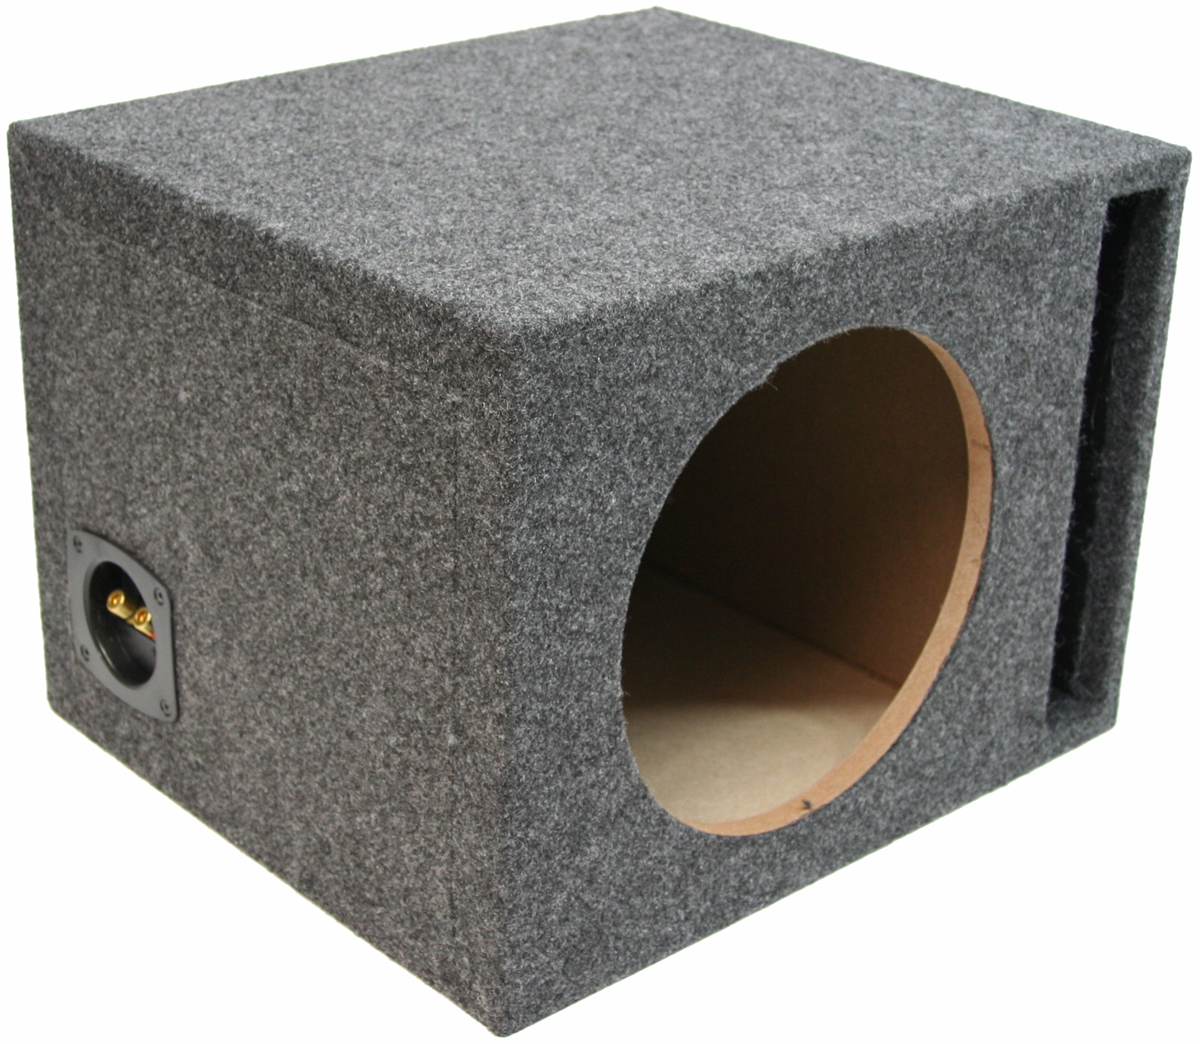 Single 12 ported 1 mdf universal fit sub box enclosure pv112 single 12 ported 1 mdf universal fit sub box enclosure sciox Images